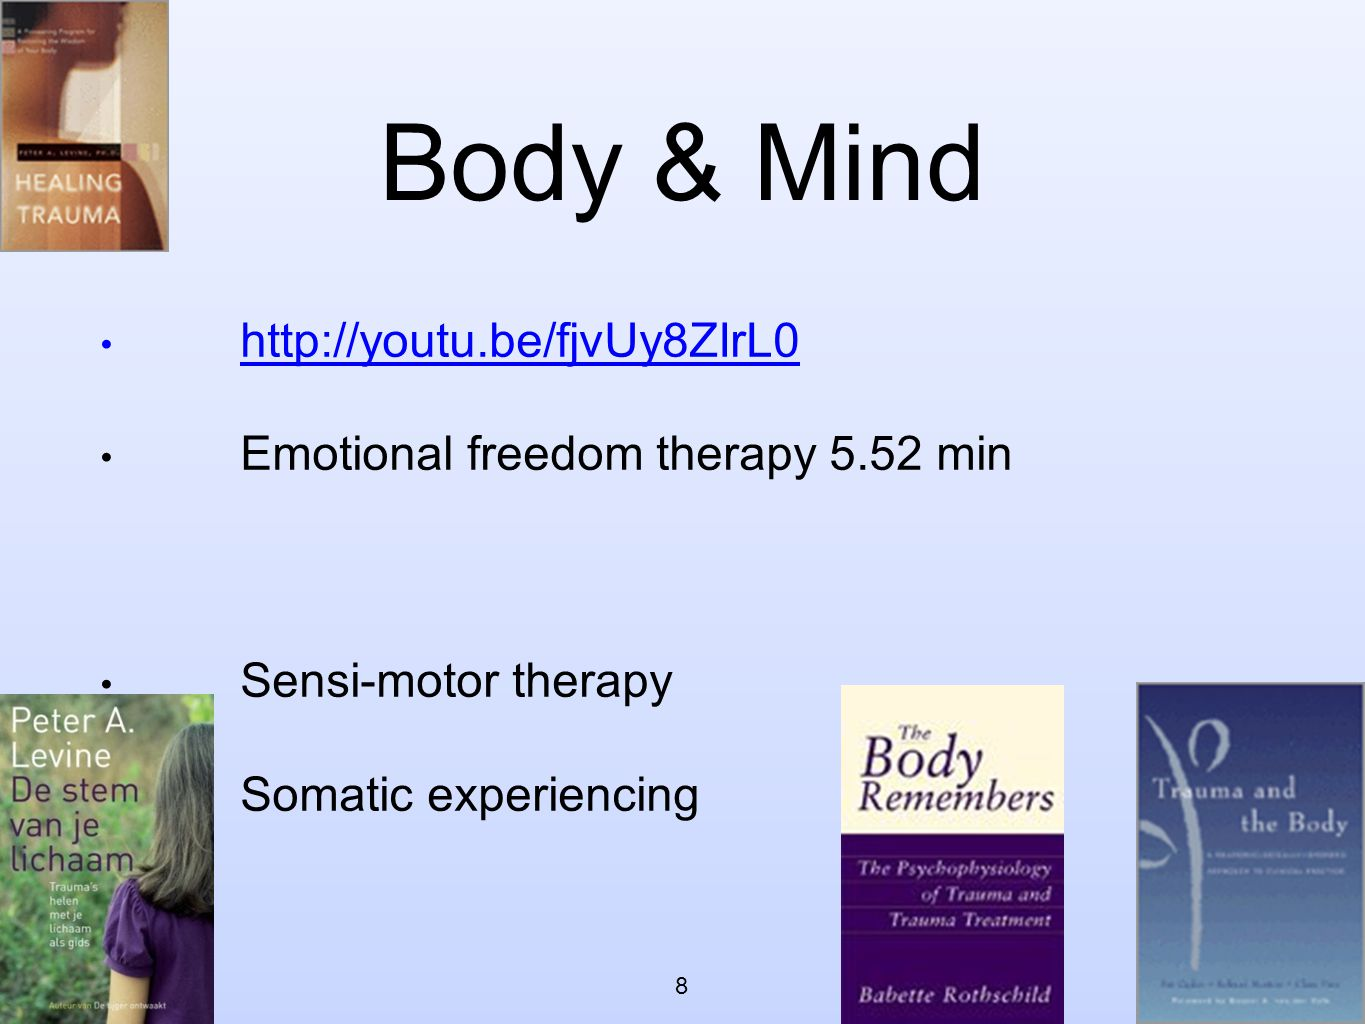 Body & Mind http://youtu.be/fjvUy8ZIrL0